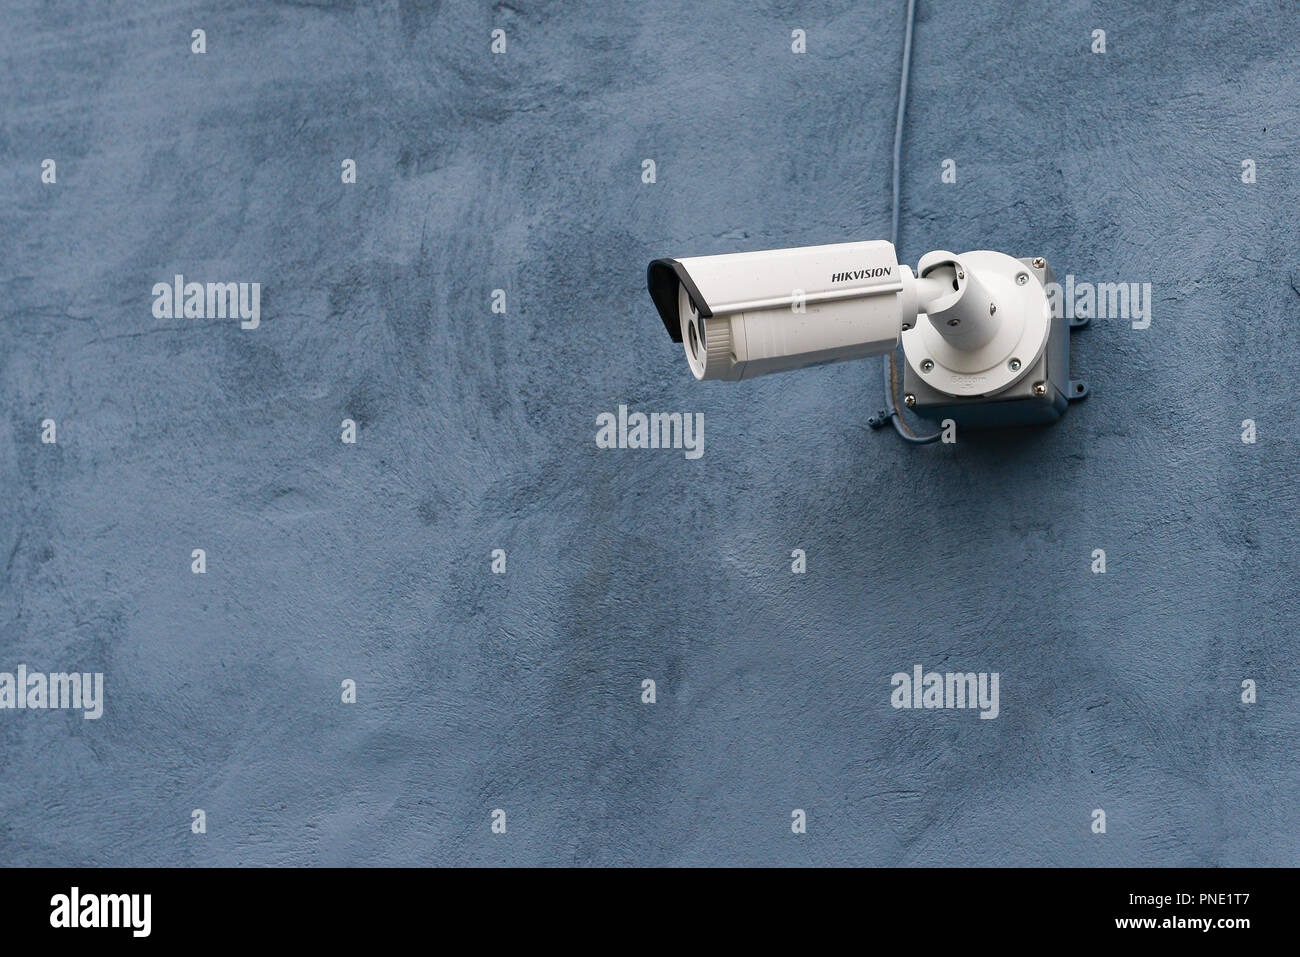 A Hikvision video surveillance camera mounted on a blue exterior wall of a building. - Stock Image